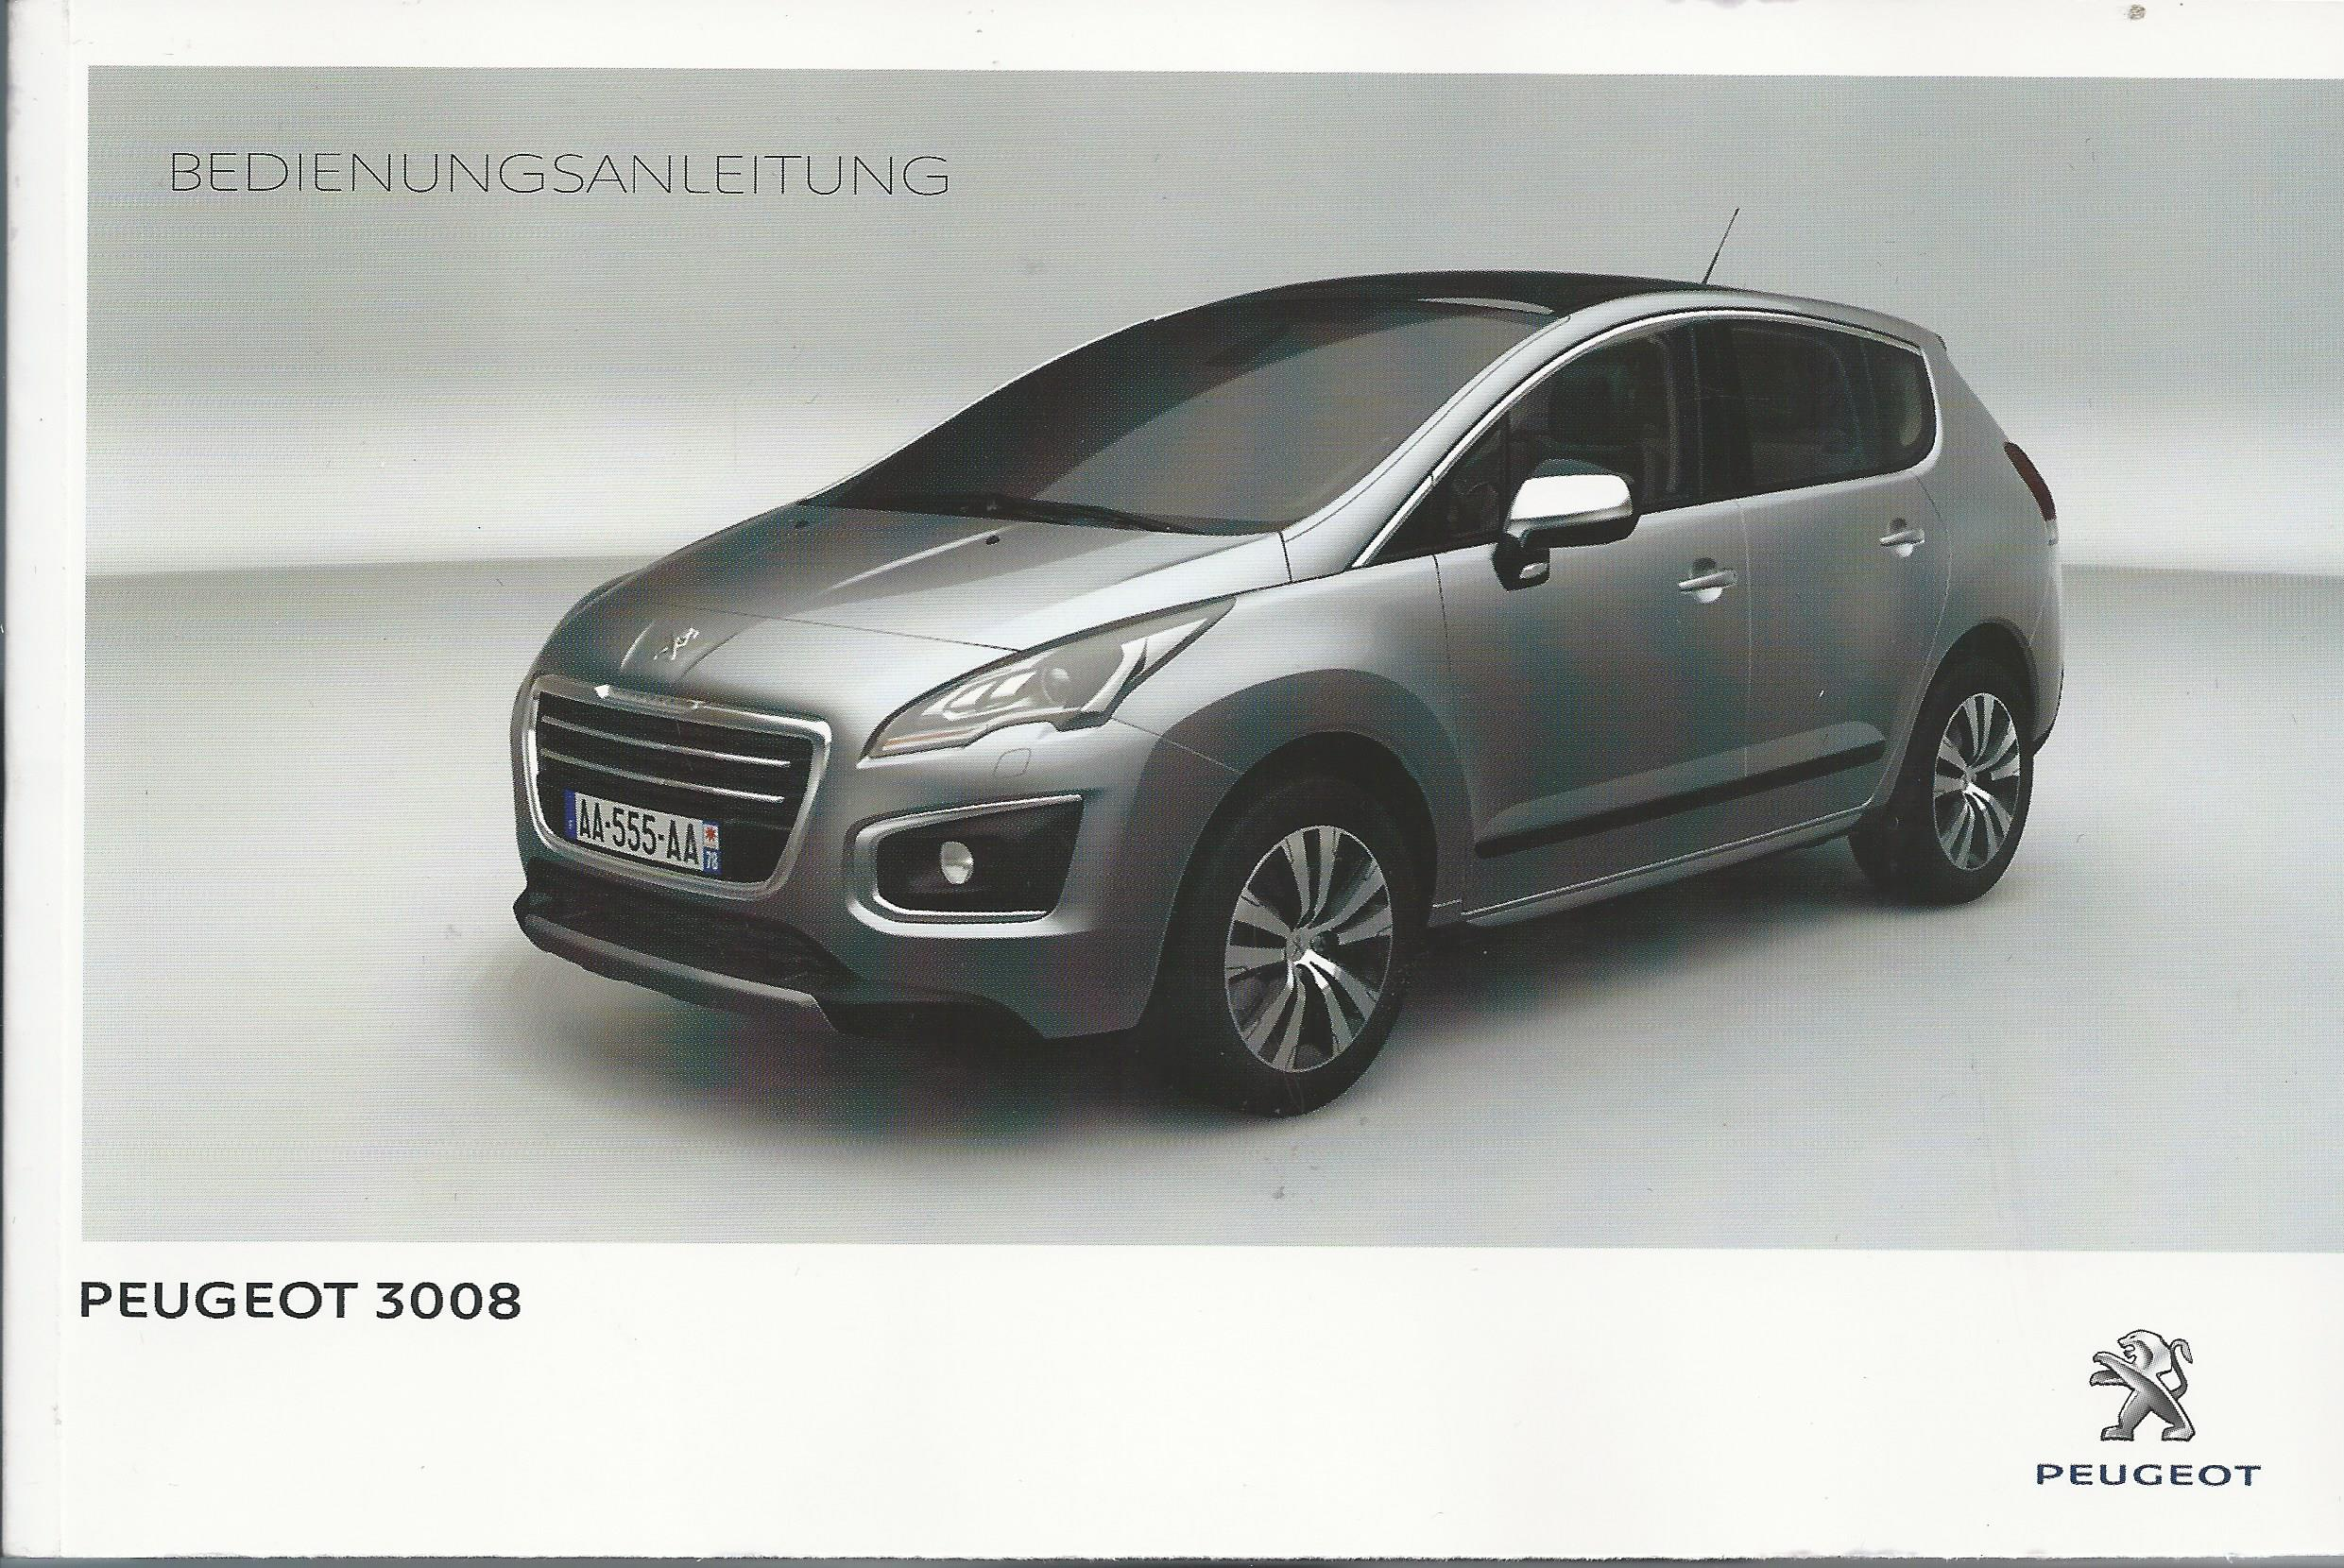 manuel d utilisation peugeot 3008 peugeot 3008 manuel 2014 manuel mode d 39 emploi ba ebay. Black Bedroom Furniture Sets. Home Design Ideas